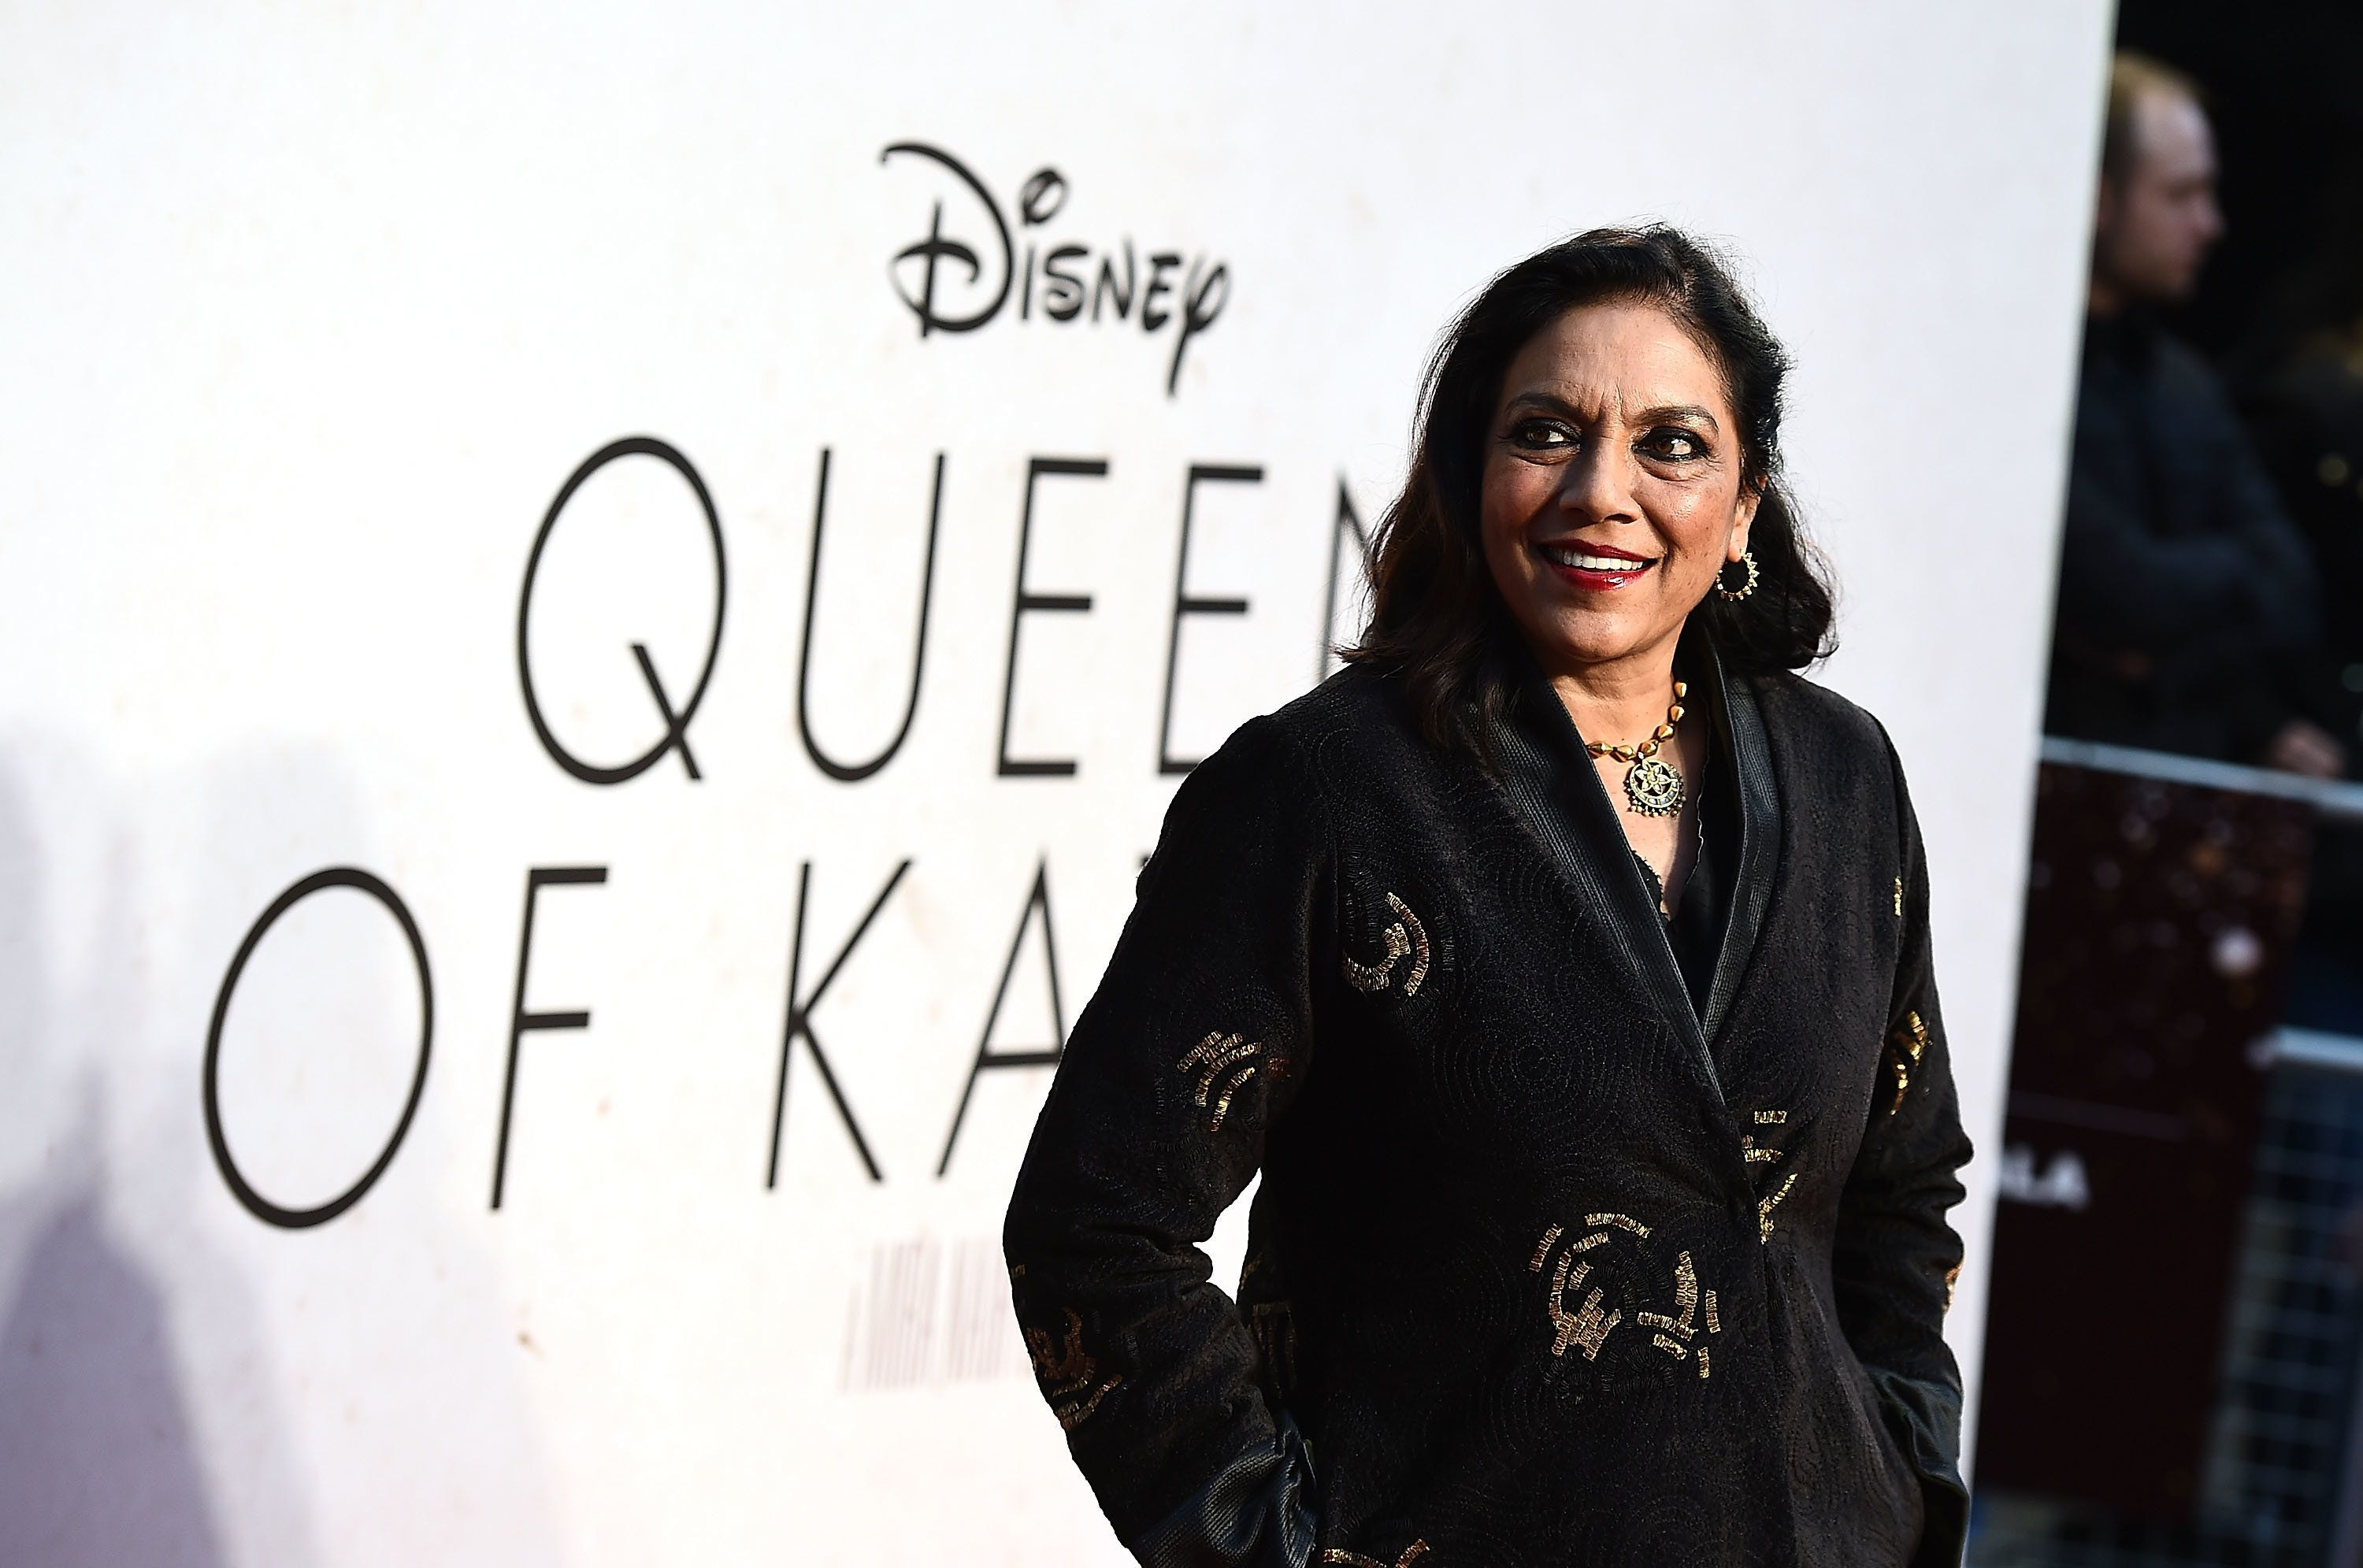 LONDON, ENGLAND - OCTOBER 09:  Director Mira Nair attends the Gala Screening of 'Queen Of Katwe' during the 60th BFI London Film Festival at Odeon Leicester Square on October 9, 2016 in London, England.  (Photo by Jeff Spicer/Getty Images for Disney)